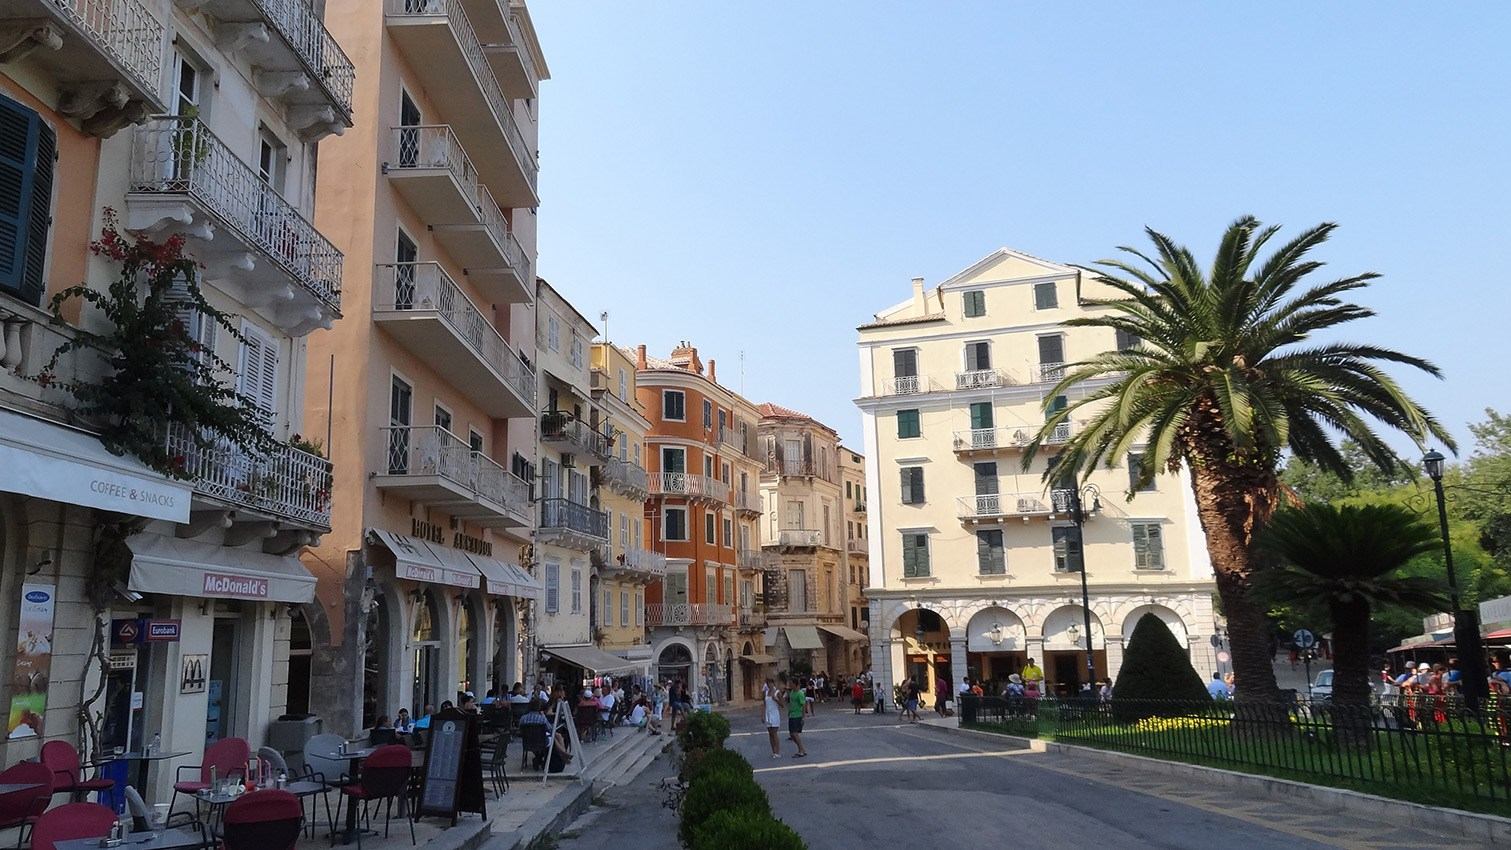 Achillion + Corfu town with Mon Repos